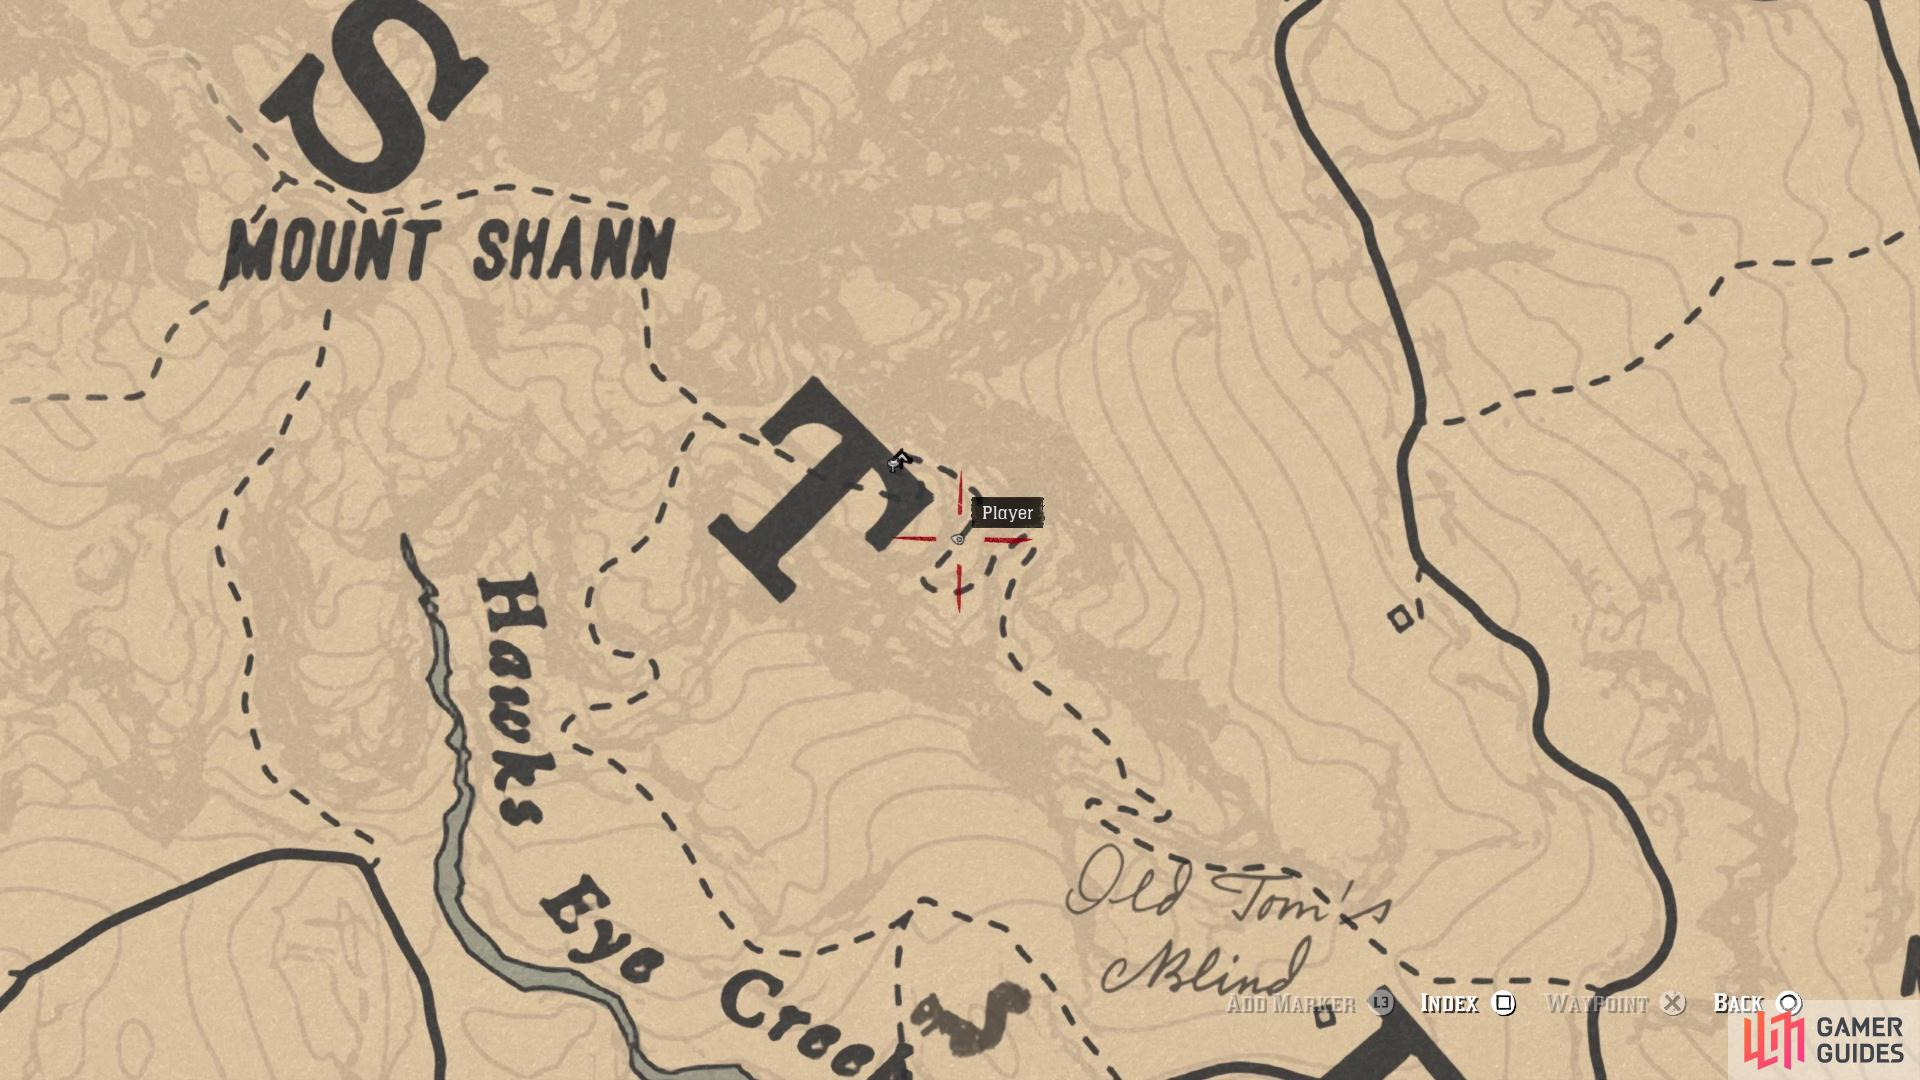 The location of the carving on the map